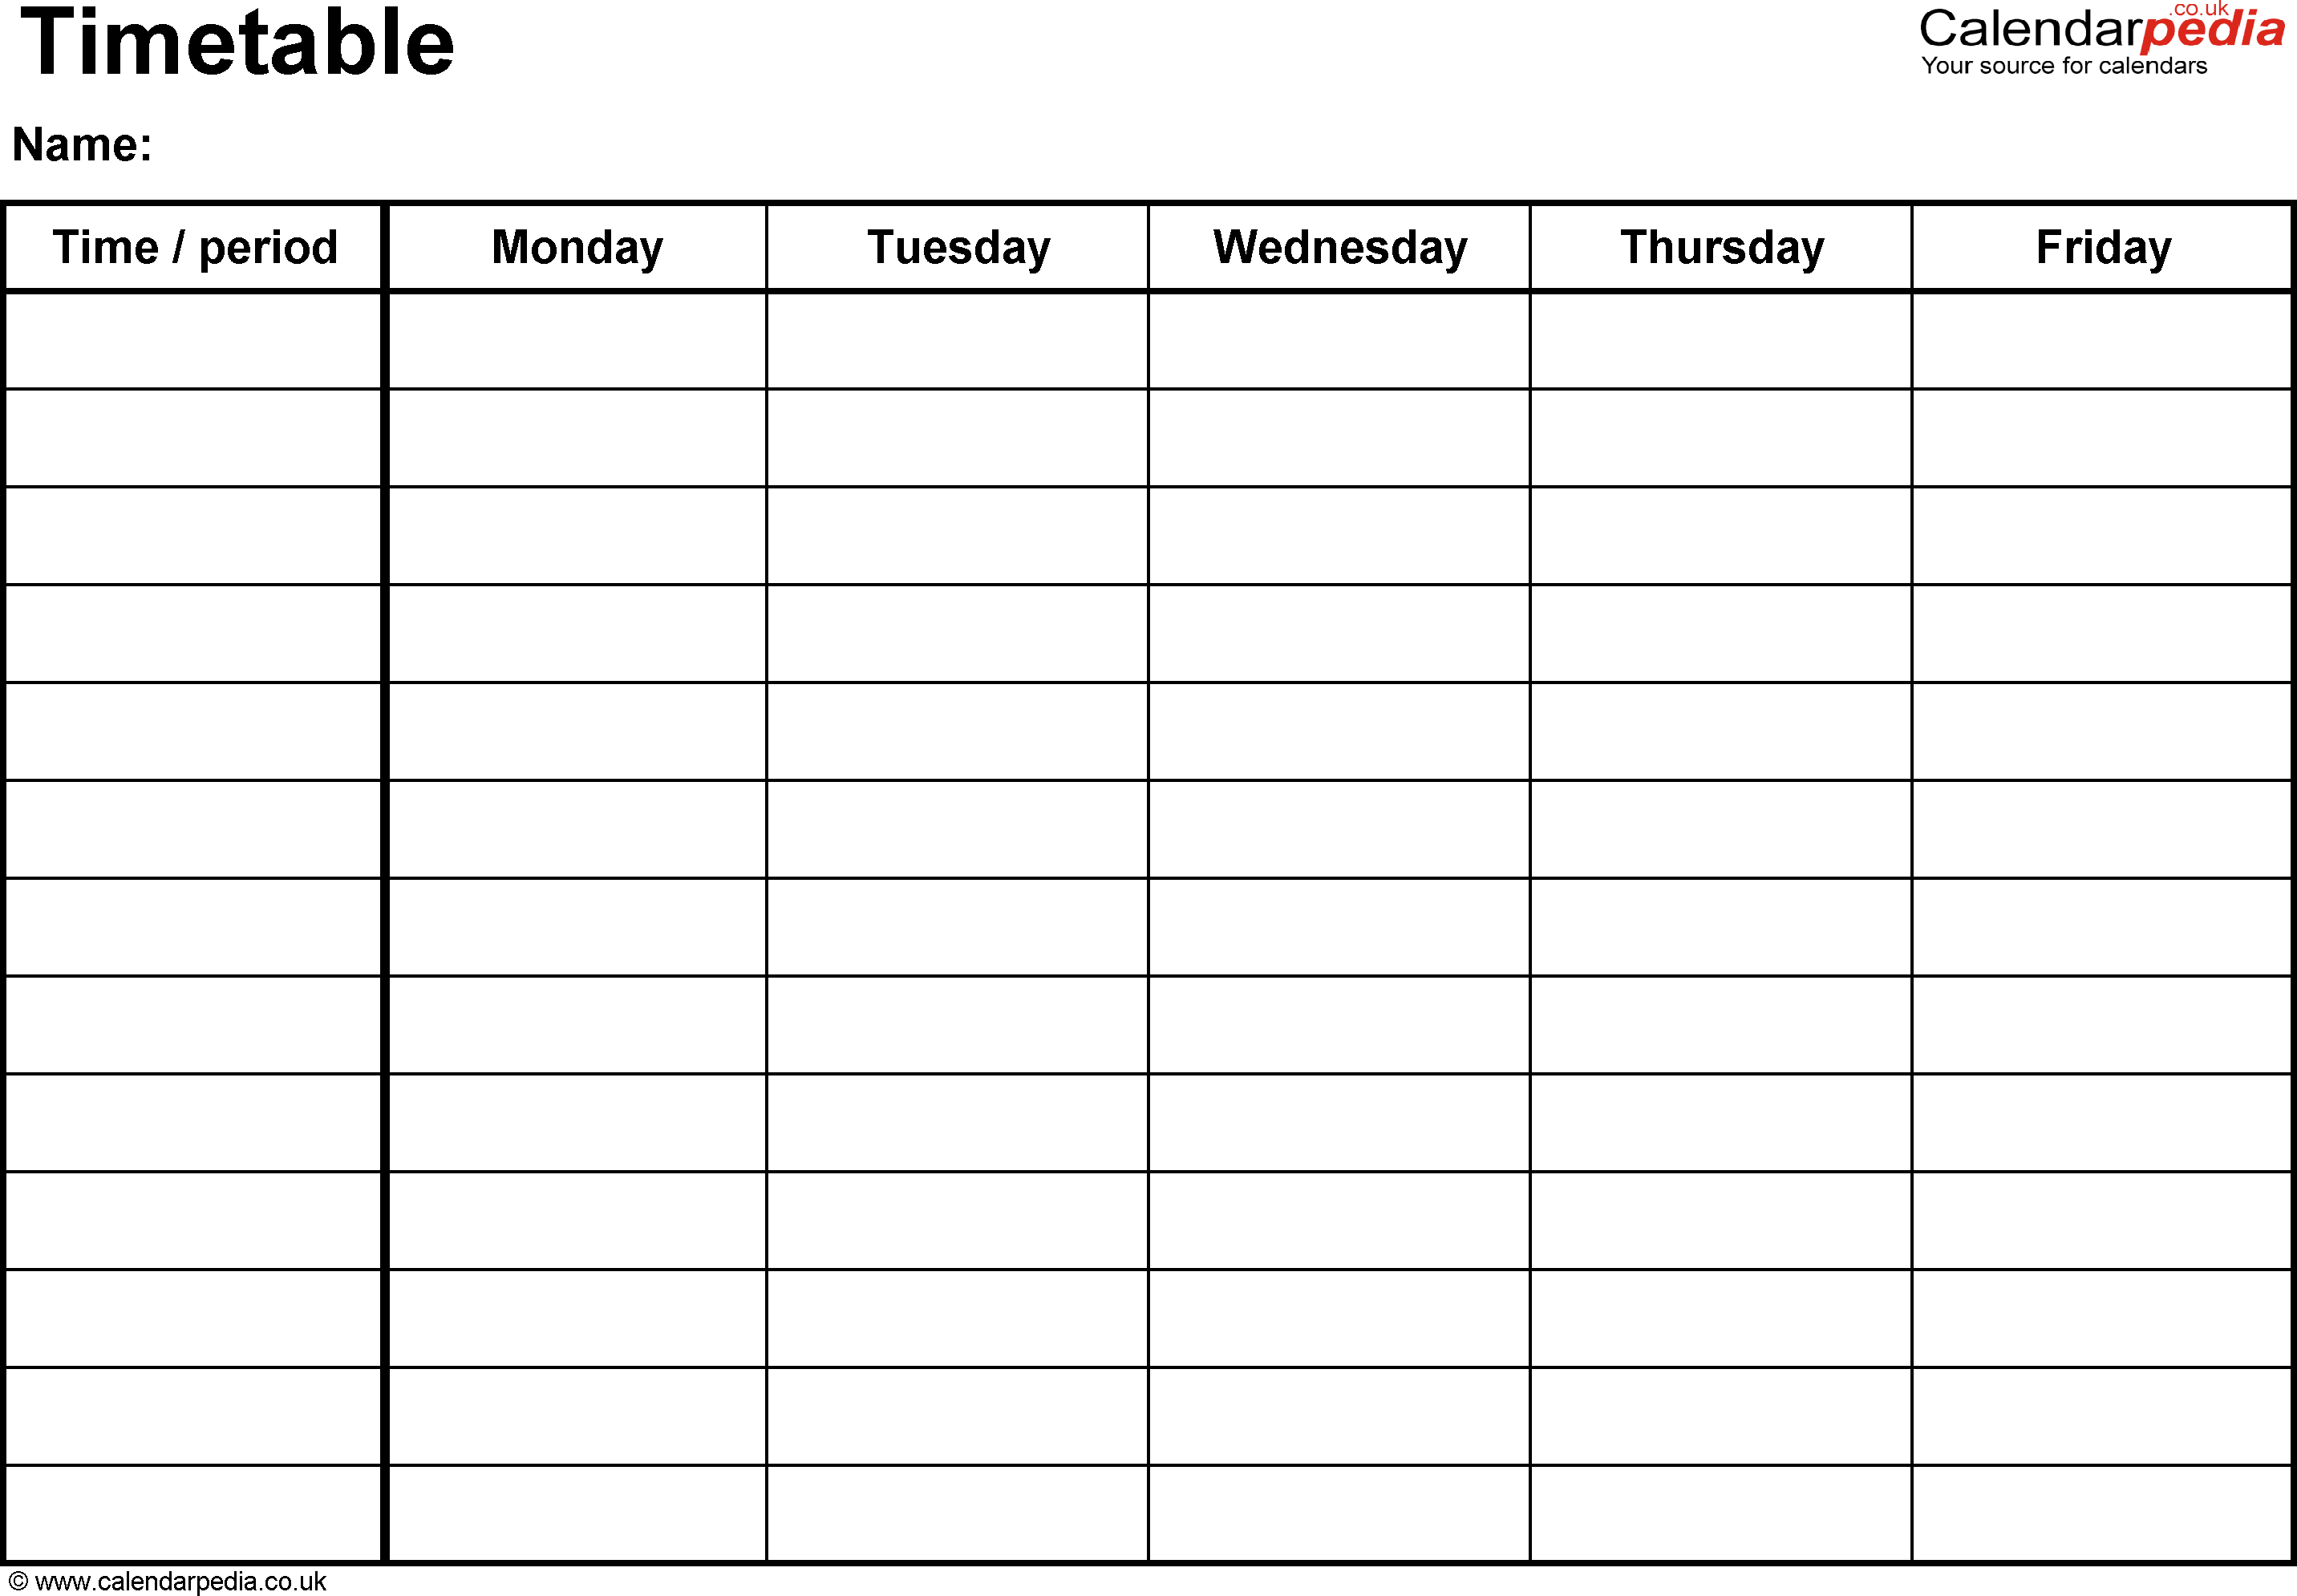 14 Visiting Class Timetable Template Free Templates for Class Timetable Template Free